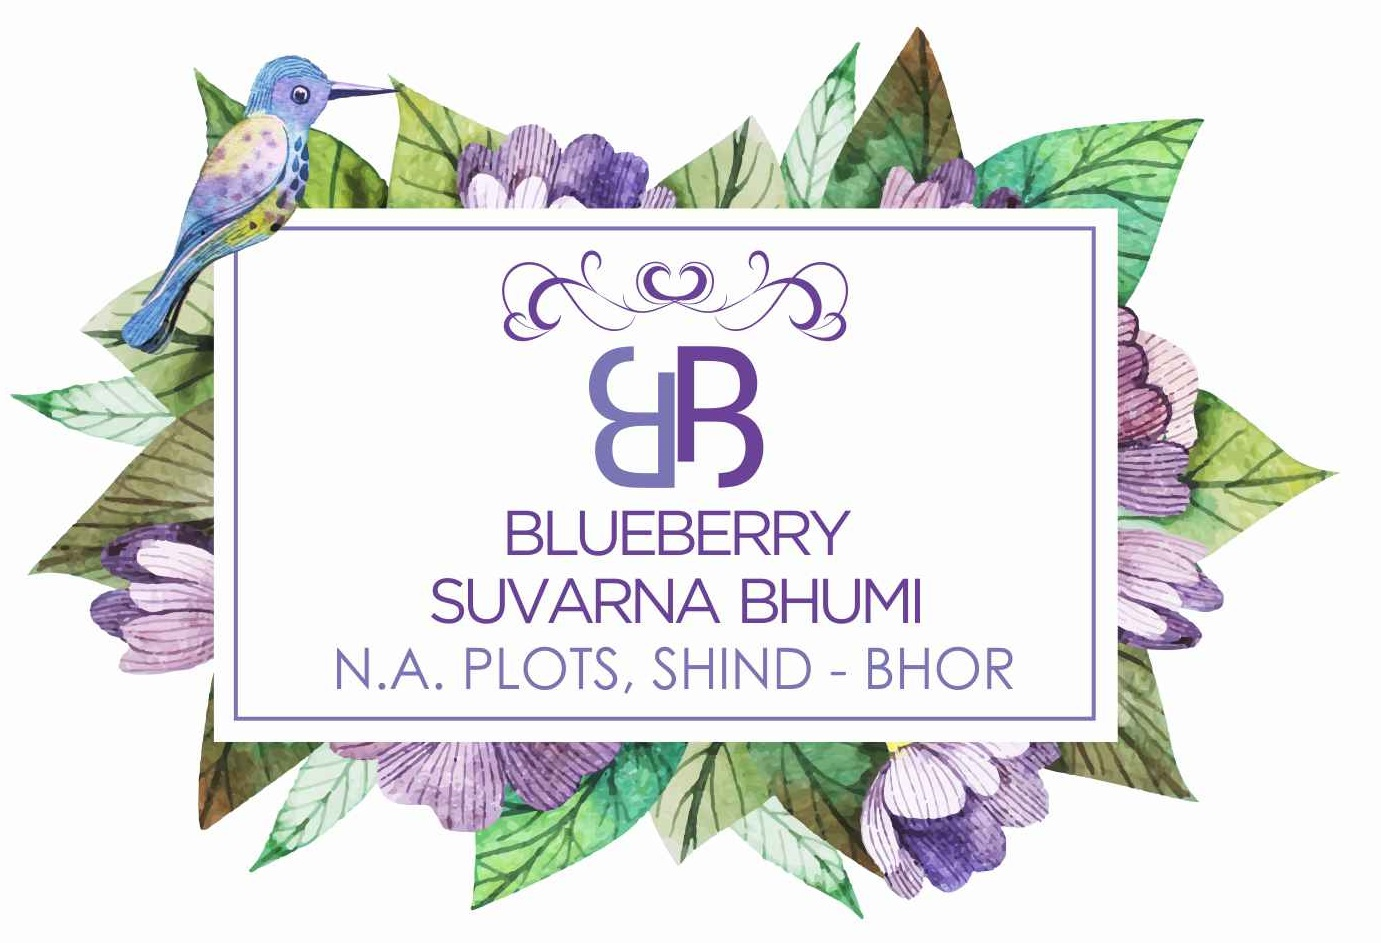 Blueberry : Shind, Bhor